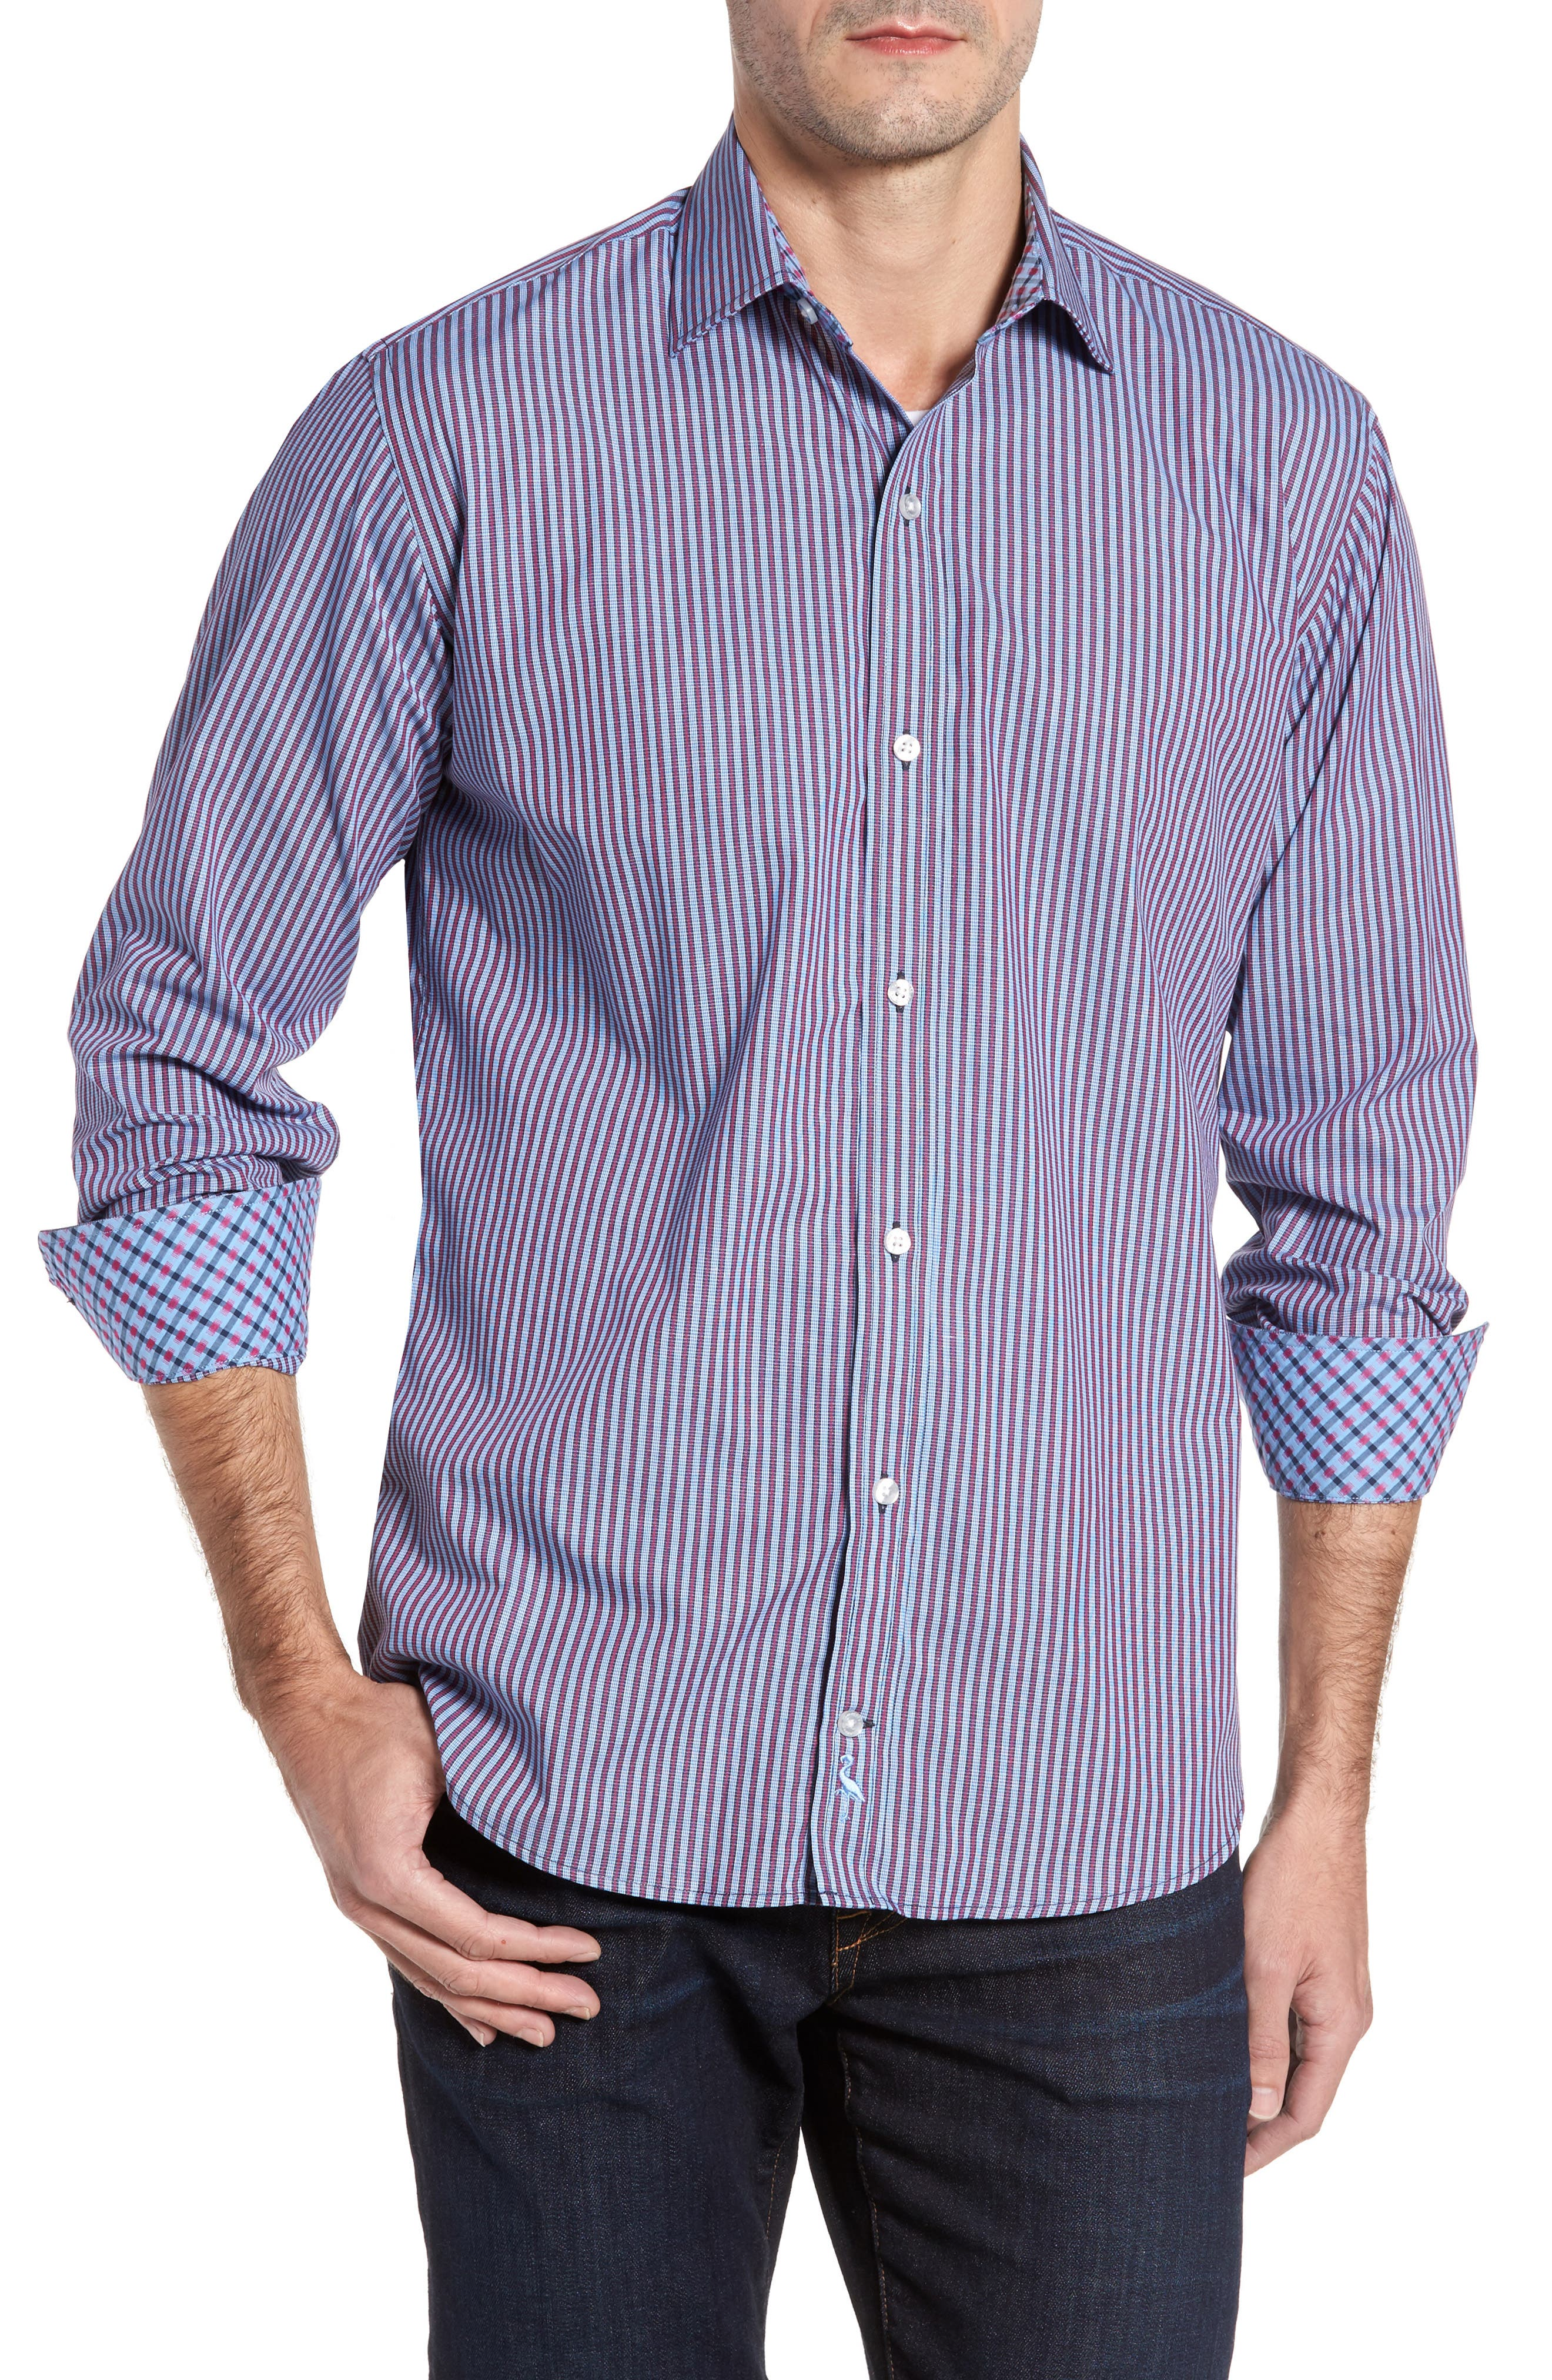 Brownfields Striped Sport Shirt,                         Main,                         color, Merlot